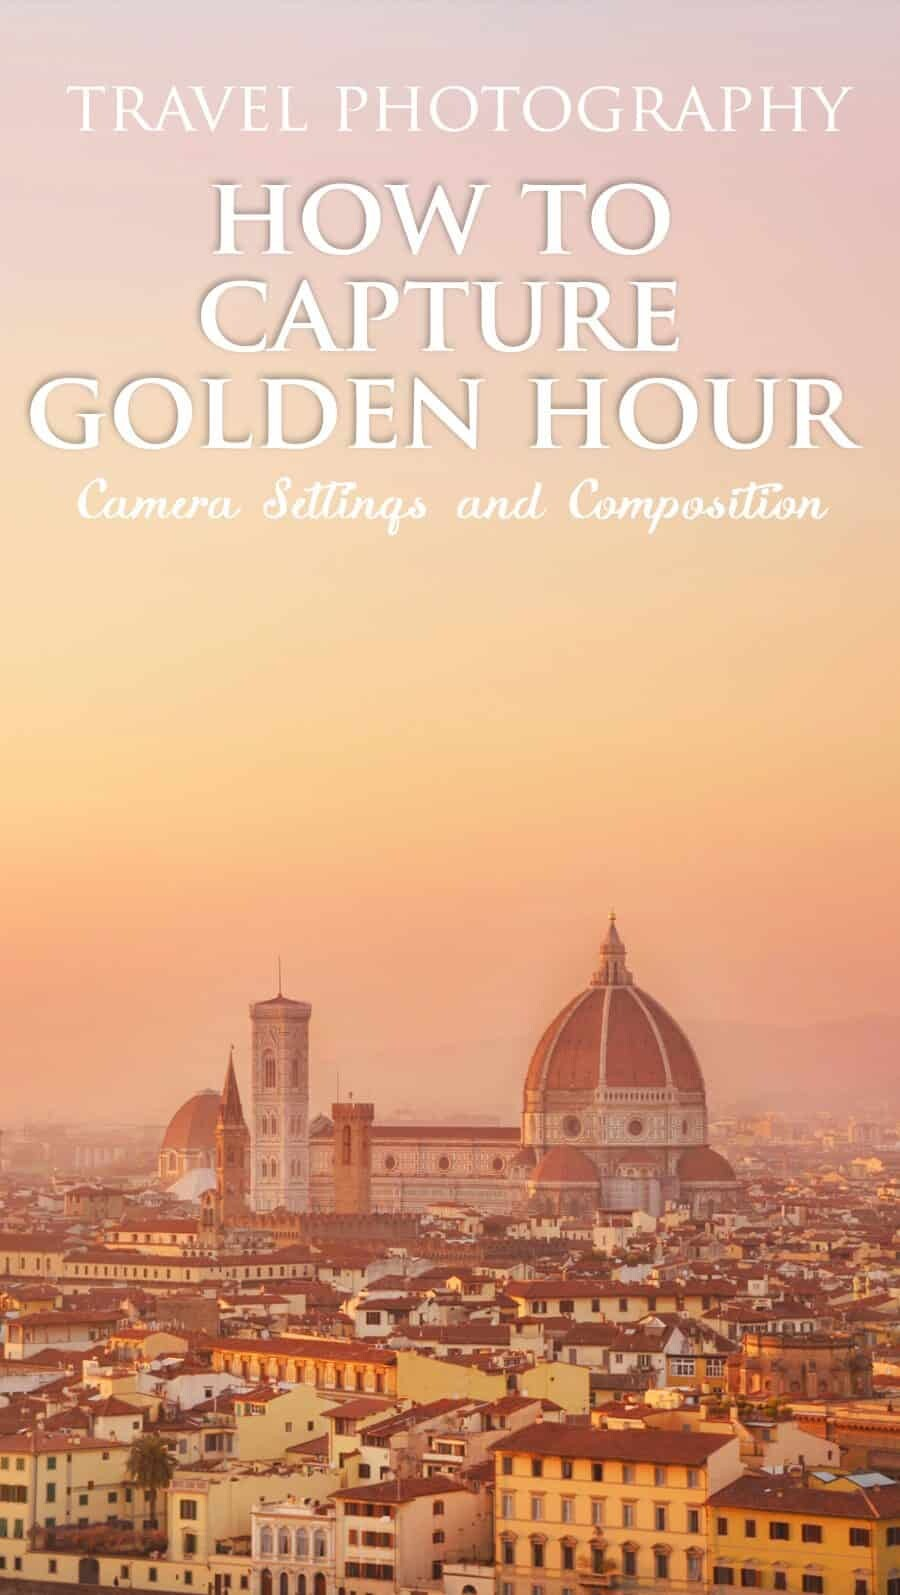 Travel Photography - Golden Hour the best camera settings and composition advice.